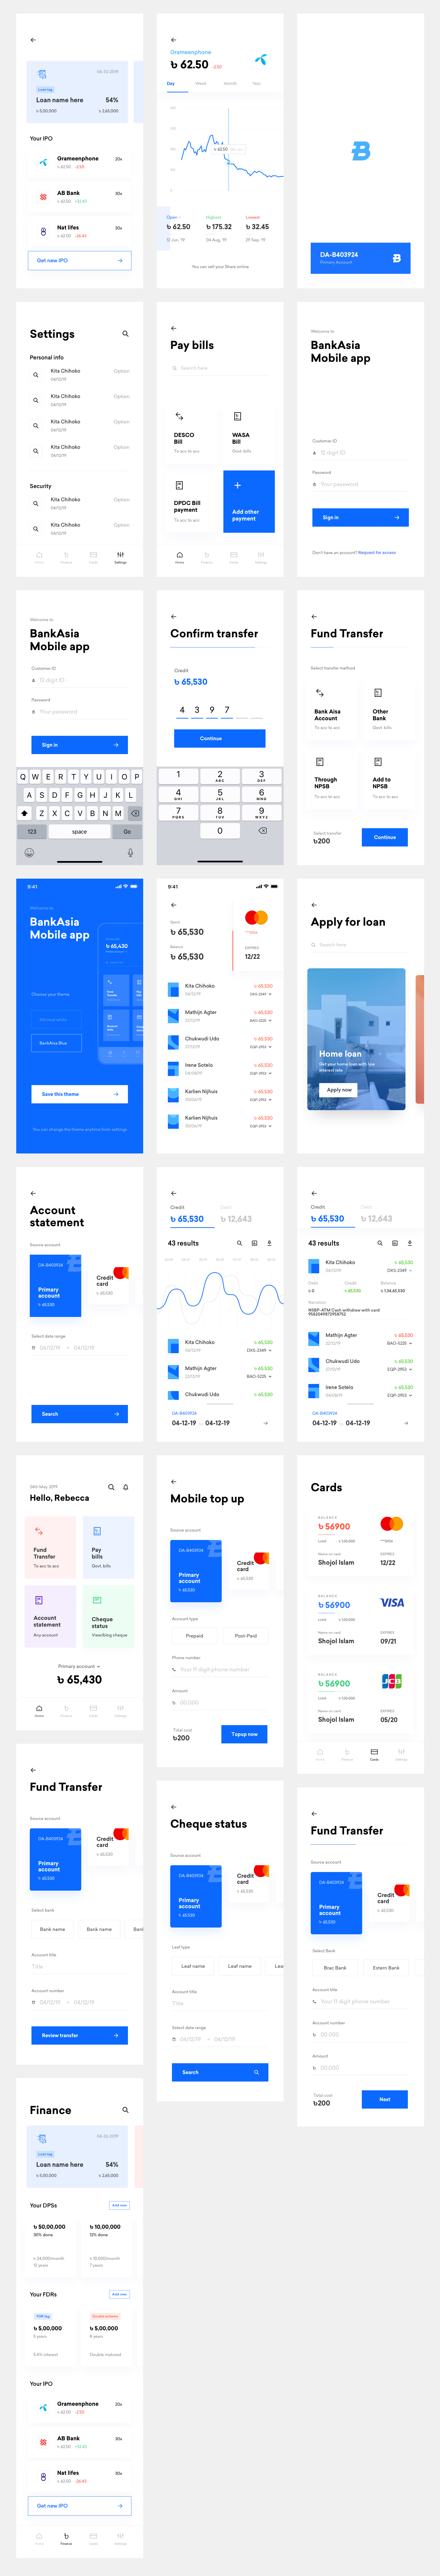 Banking Wallet App Free UI Kit for Sketch - This UI kit can be used for all kinds of online Banking/Wallet app. This FREE UI kit contains 25+ minimal screens designed for iPhone 11 Pro/X.